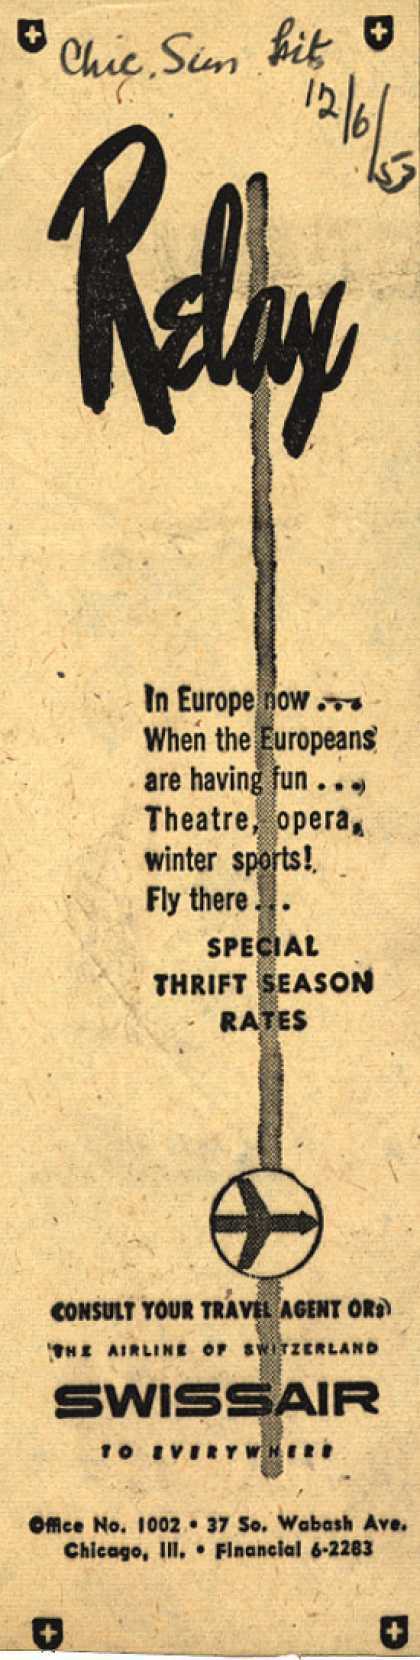 SwissAir's Thrift Season Rates – Relax (1953)